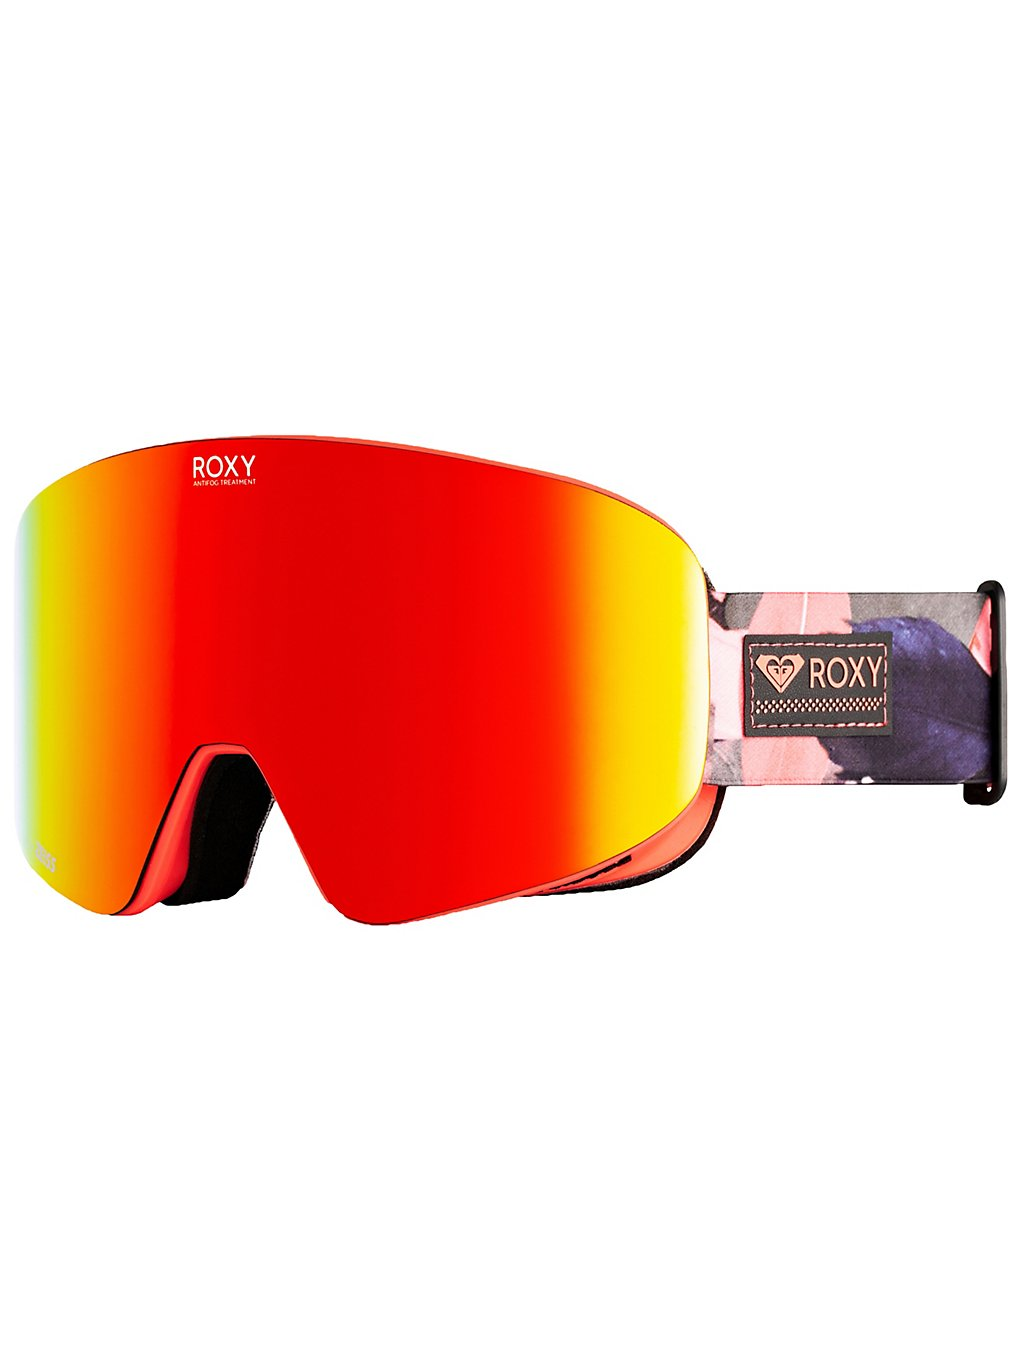 Roxy Feelin Living Coral Plumes color luxe sonar ml red